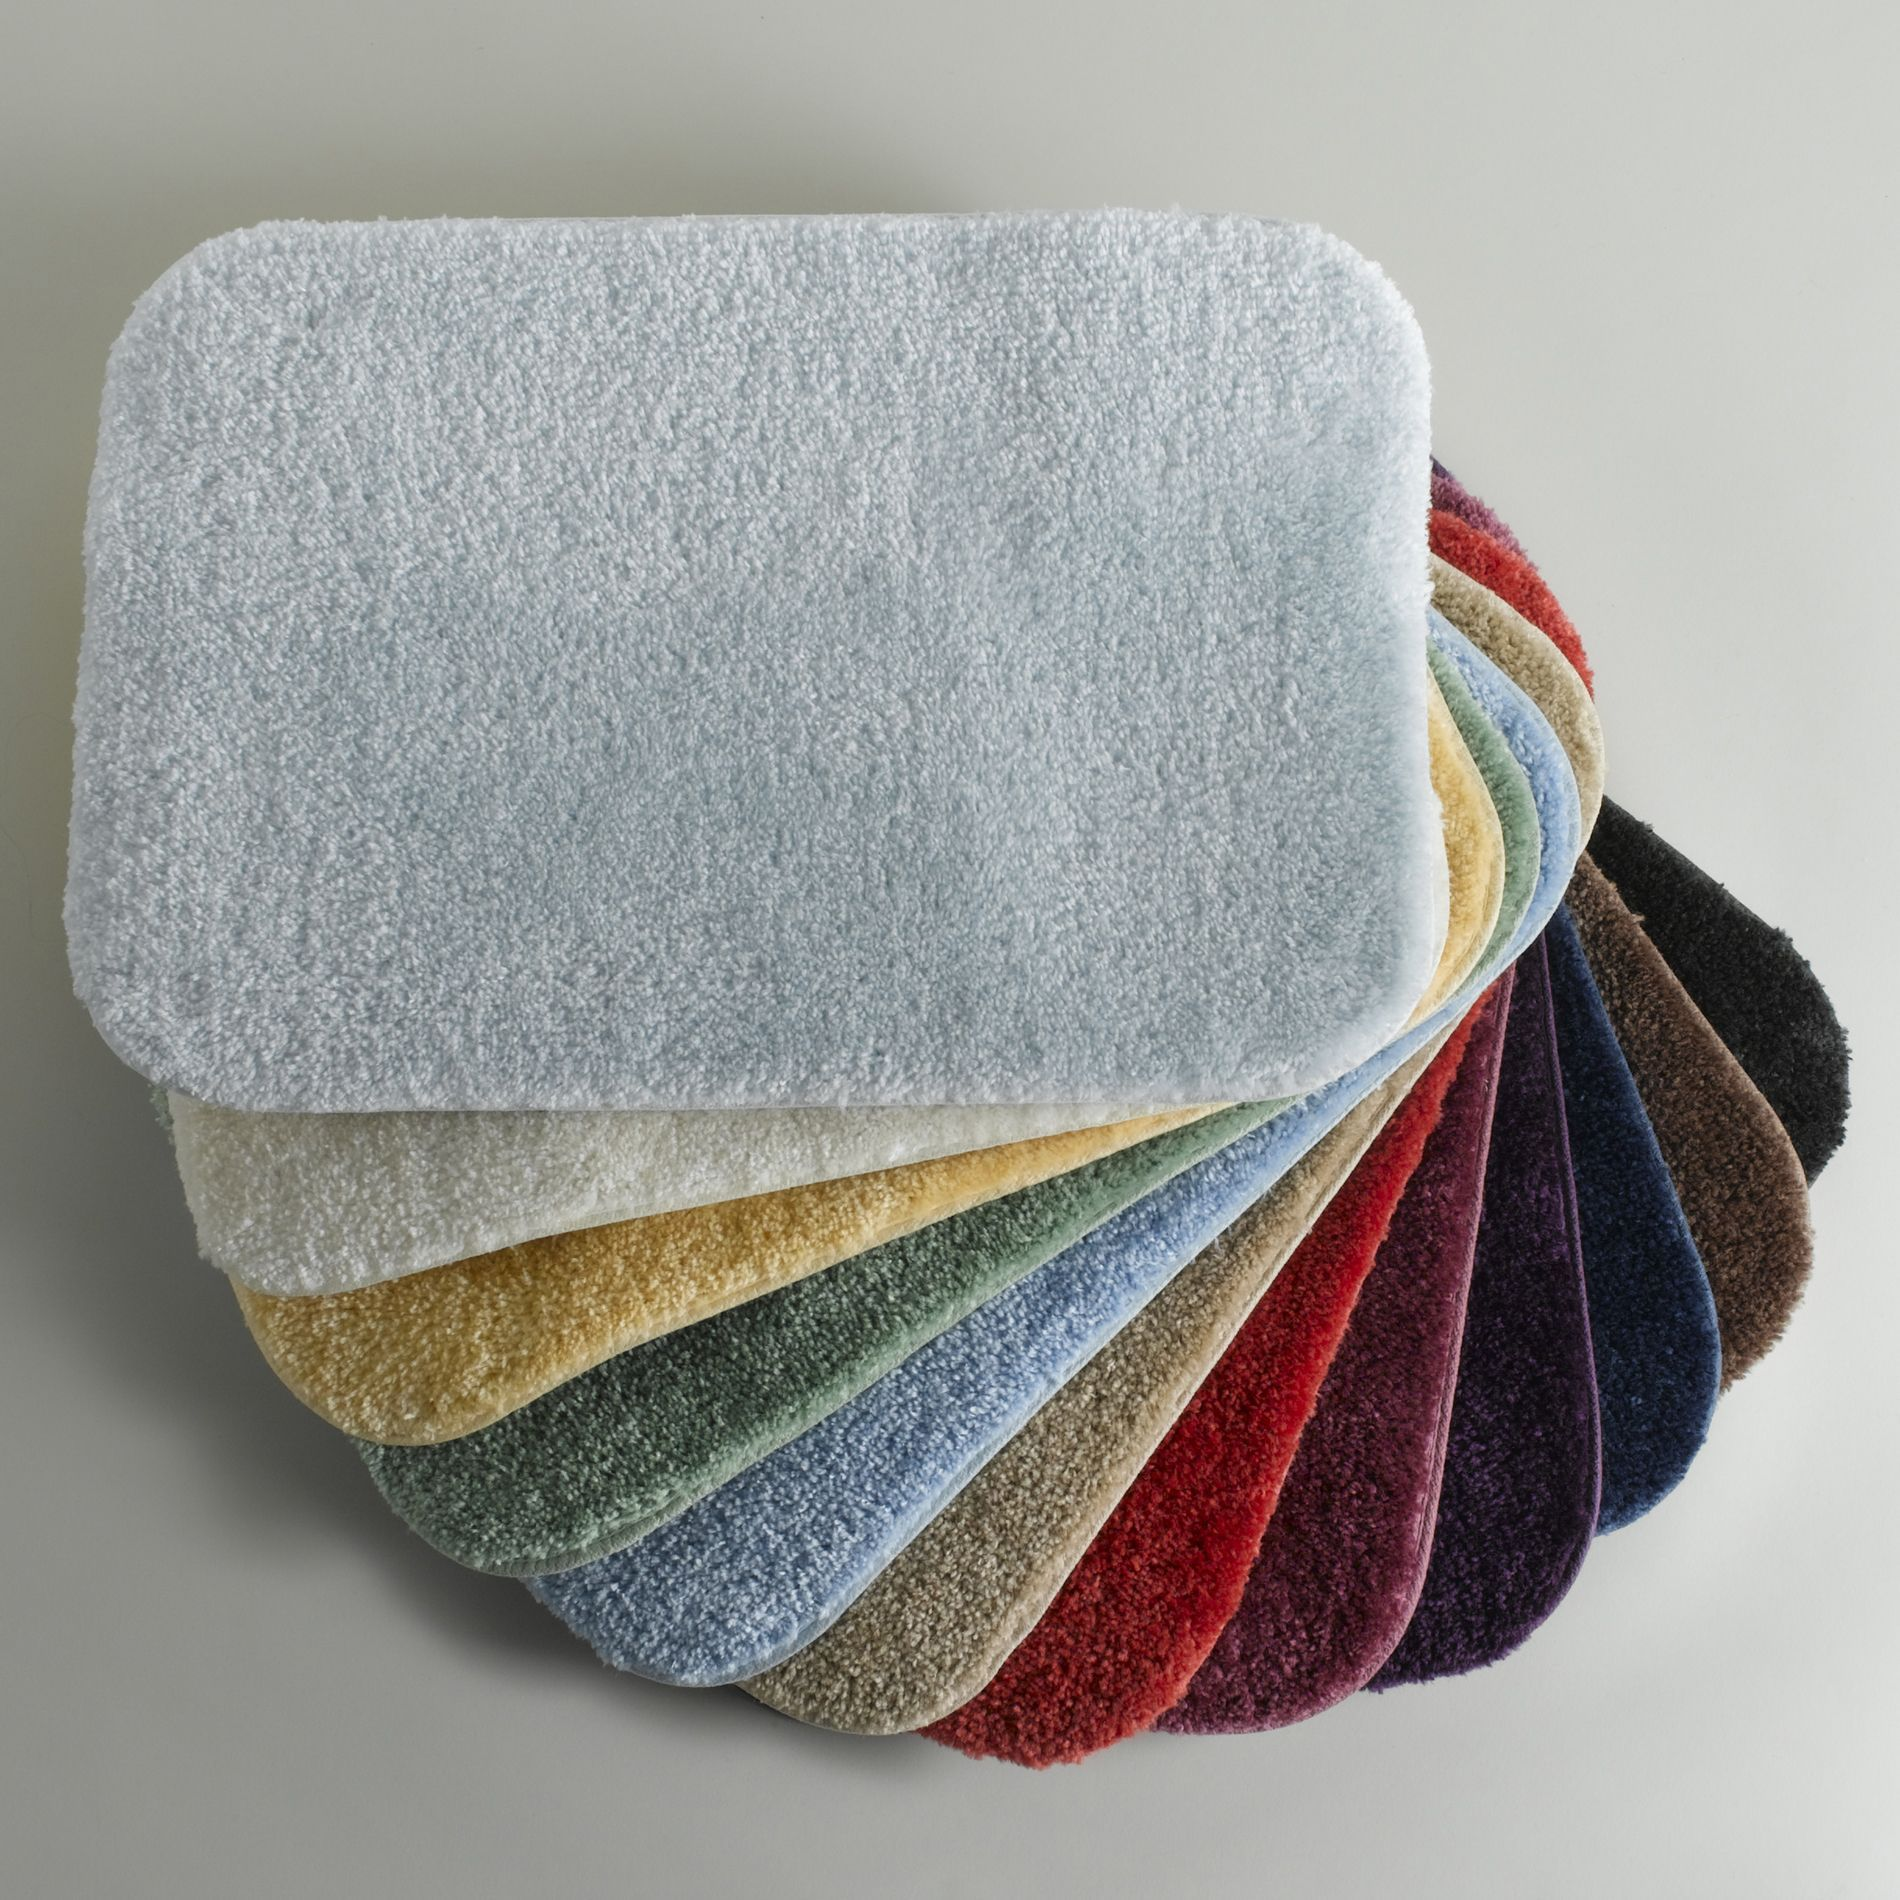 Bath Rugs With Rubber Backing Small To Medium Wish List - Rubber backed bath mats for bathroom decorating ideas